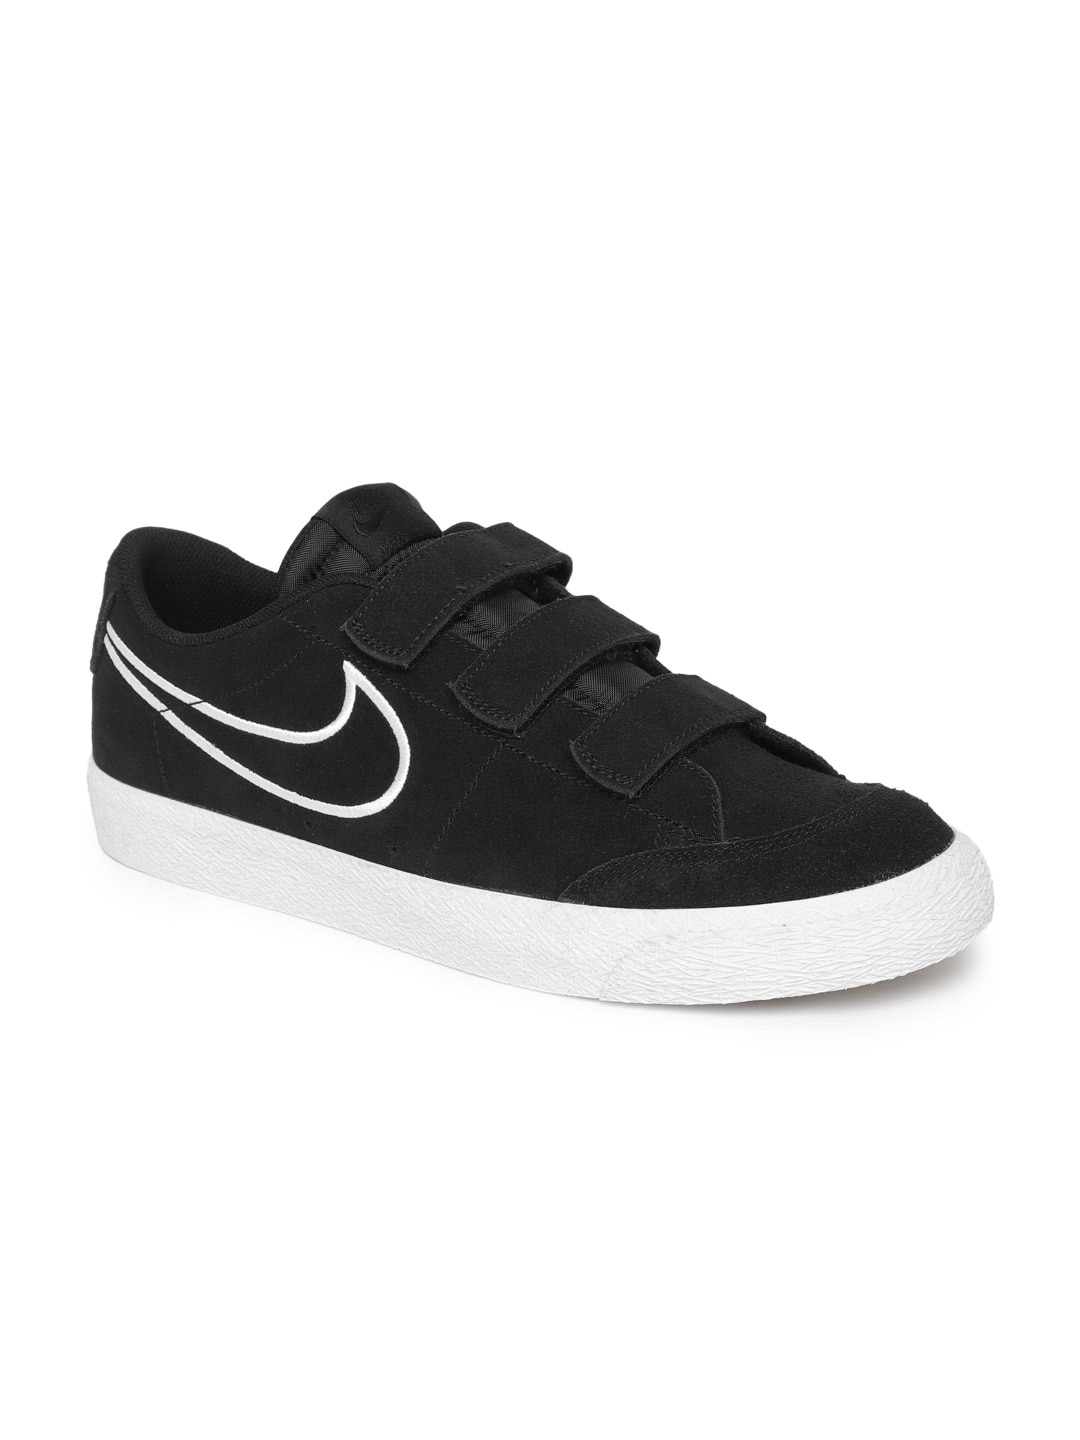 Nike Black Shoes - Buy Nike Black Shoes Online in India a7a809be269bc